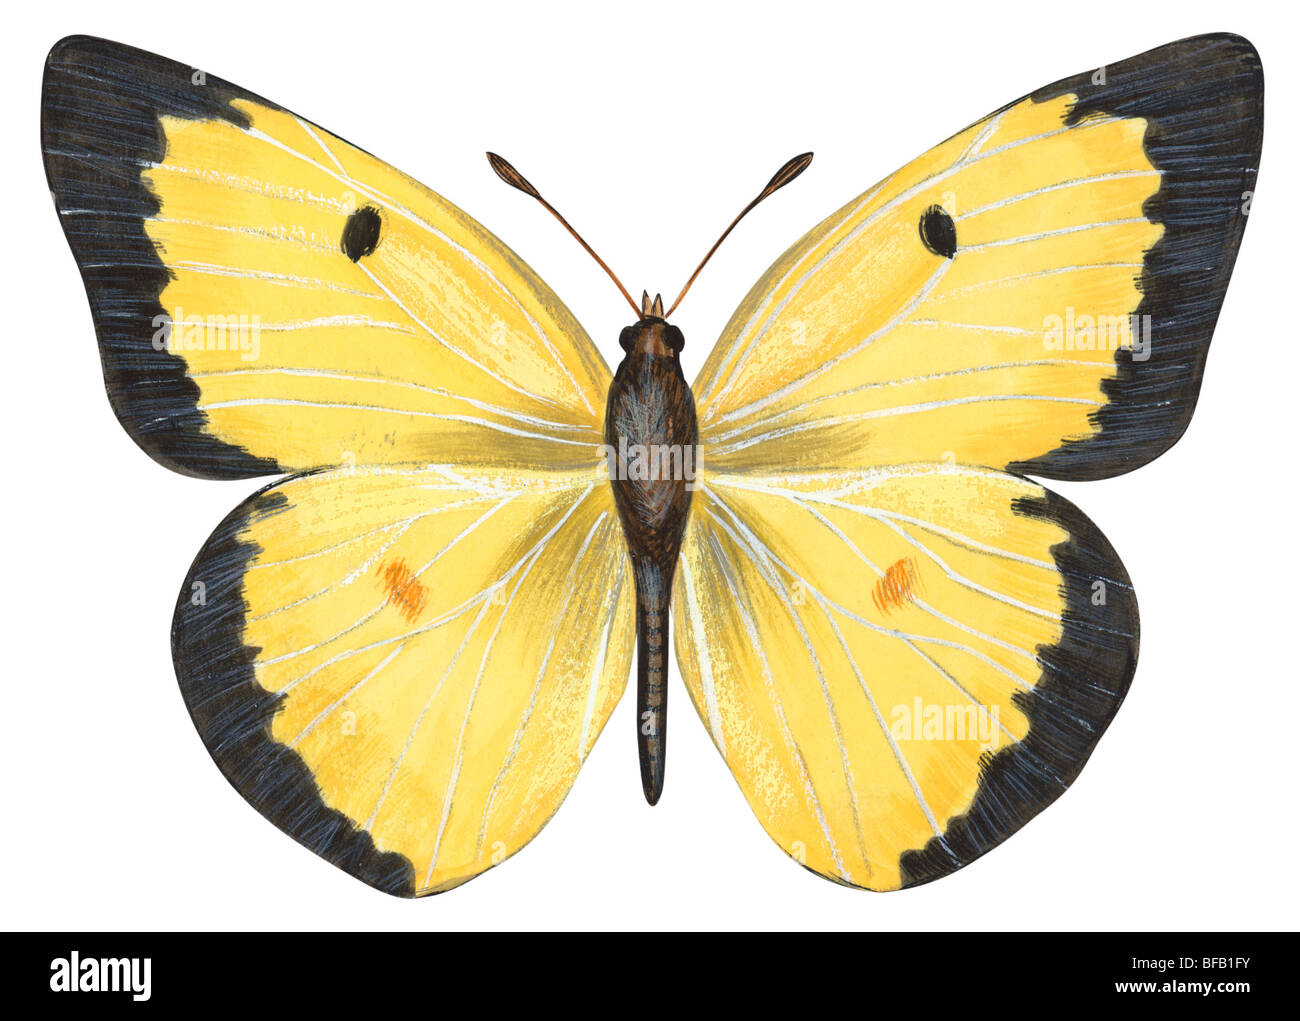 Common sulphur butterfly - Stock Image